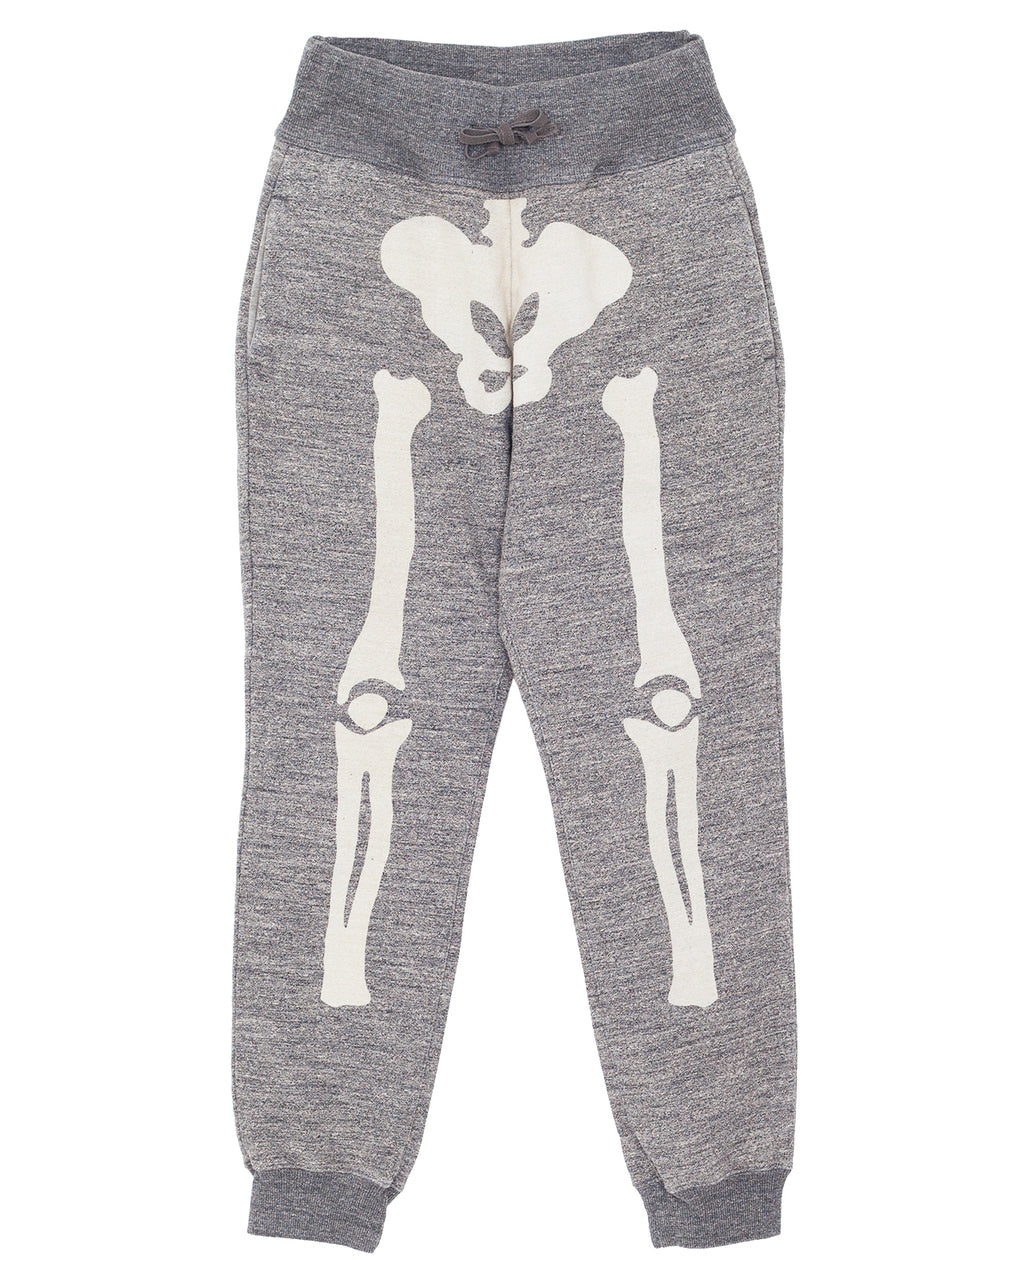 Kapital Grandrelle Fleece Knit Sweat Pants (Bone), Charcoal